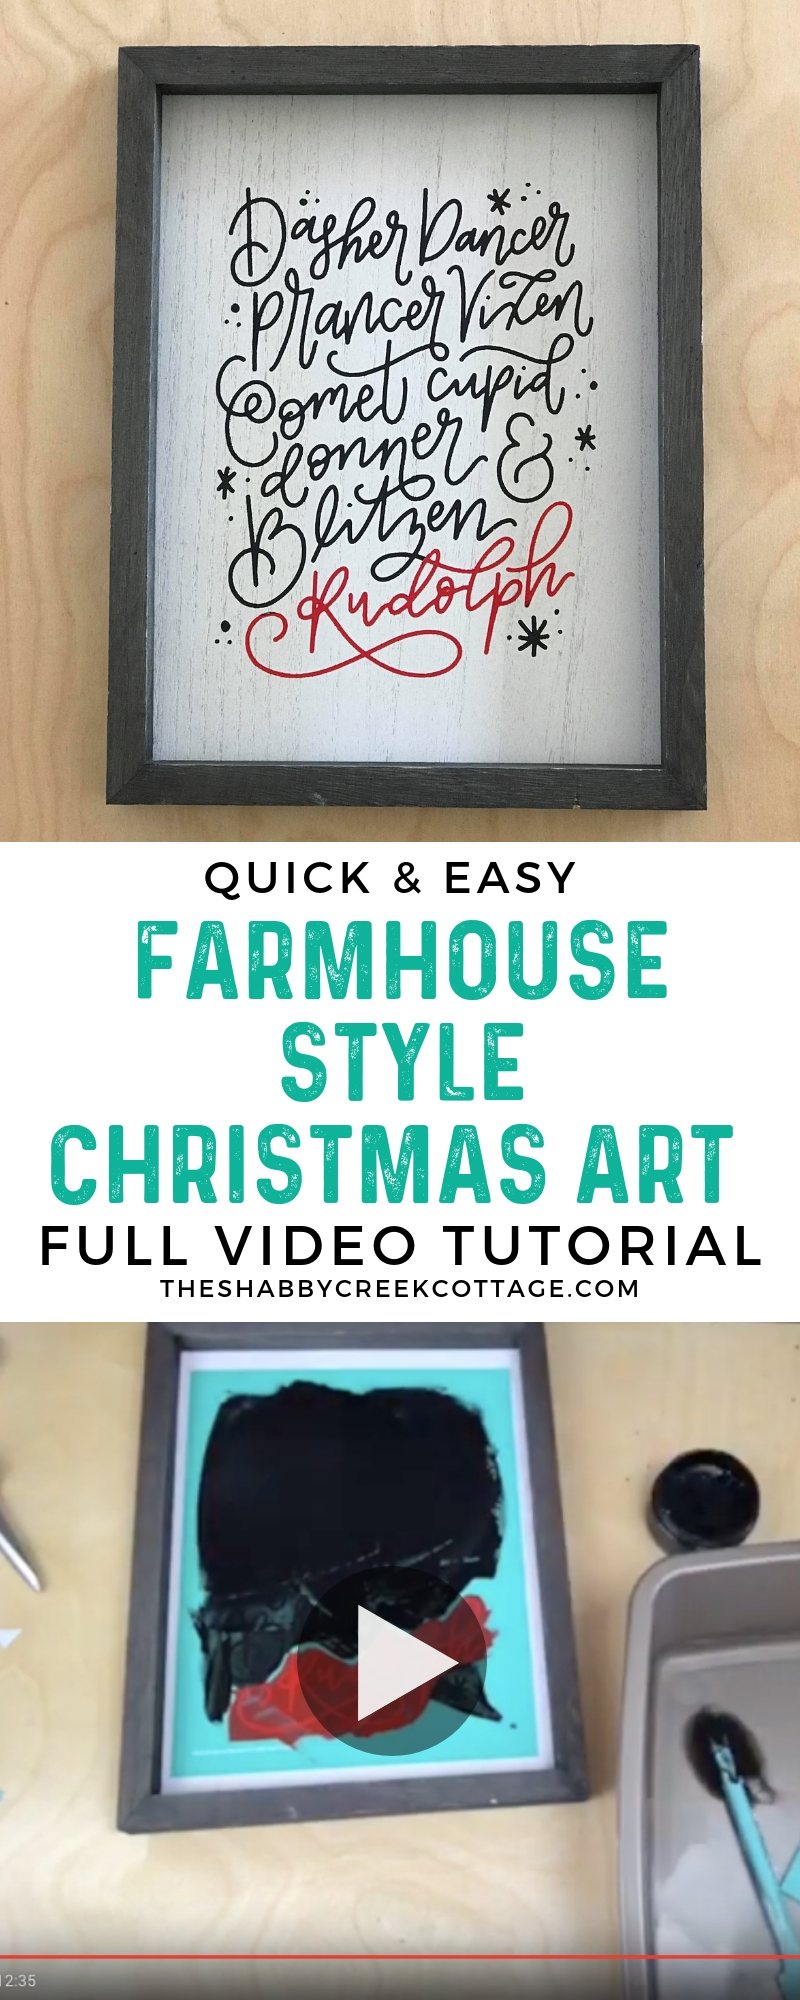 farmhouse style Christmas art using chalk couture